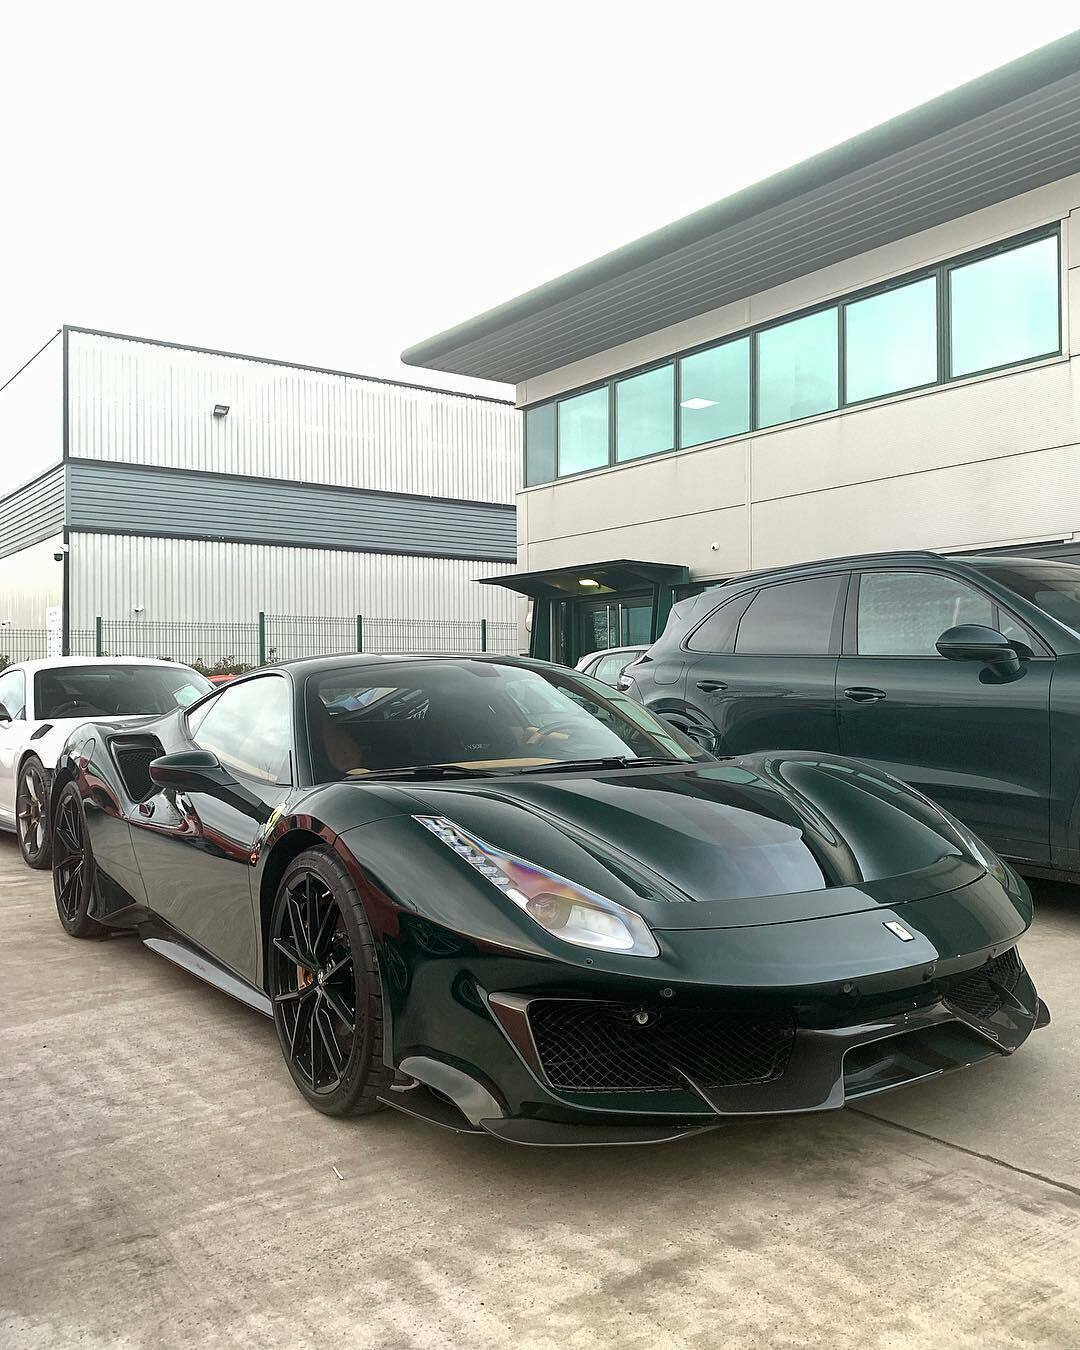 Ferrari 488 Pista British Racing Green cerchi verdi